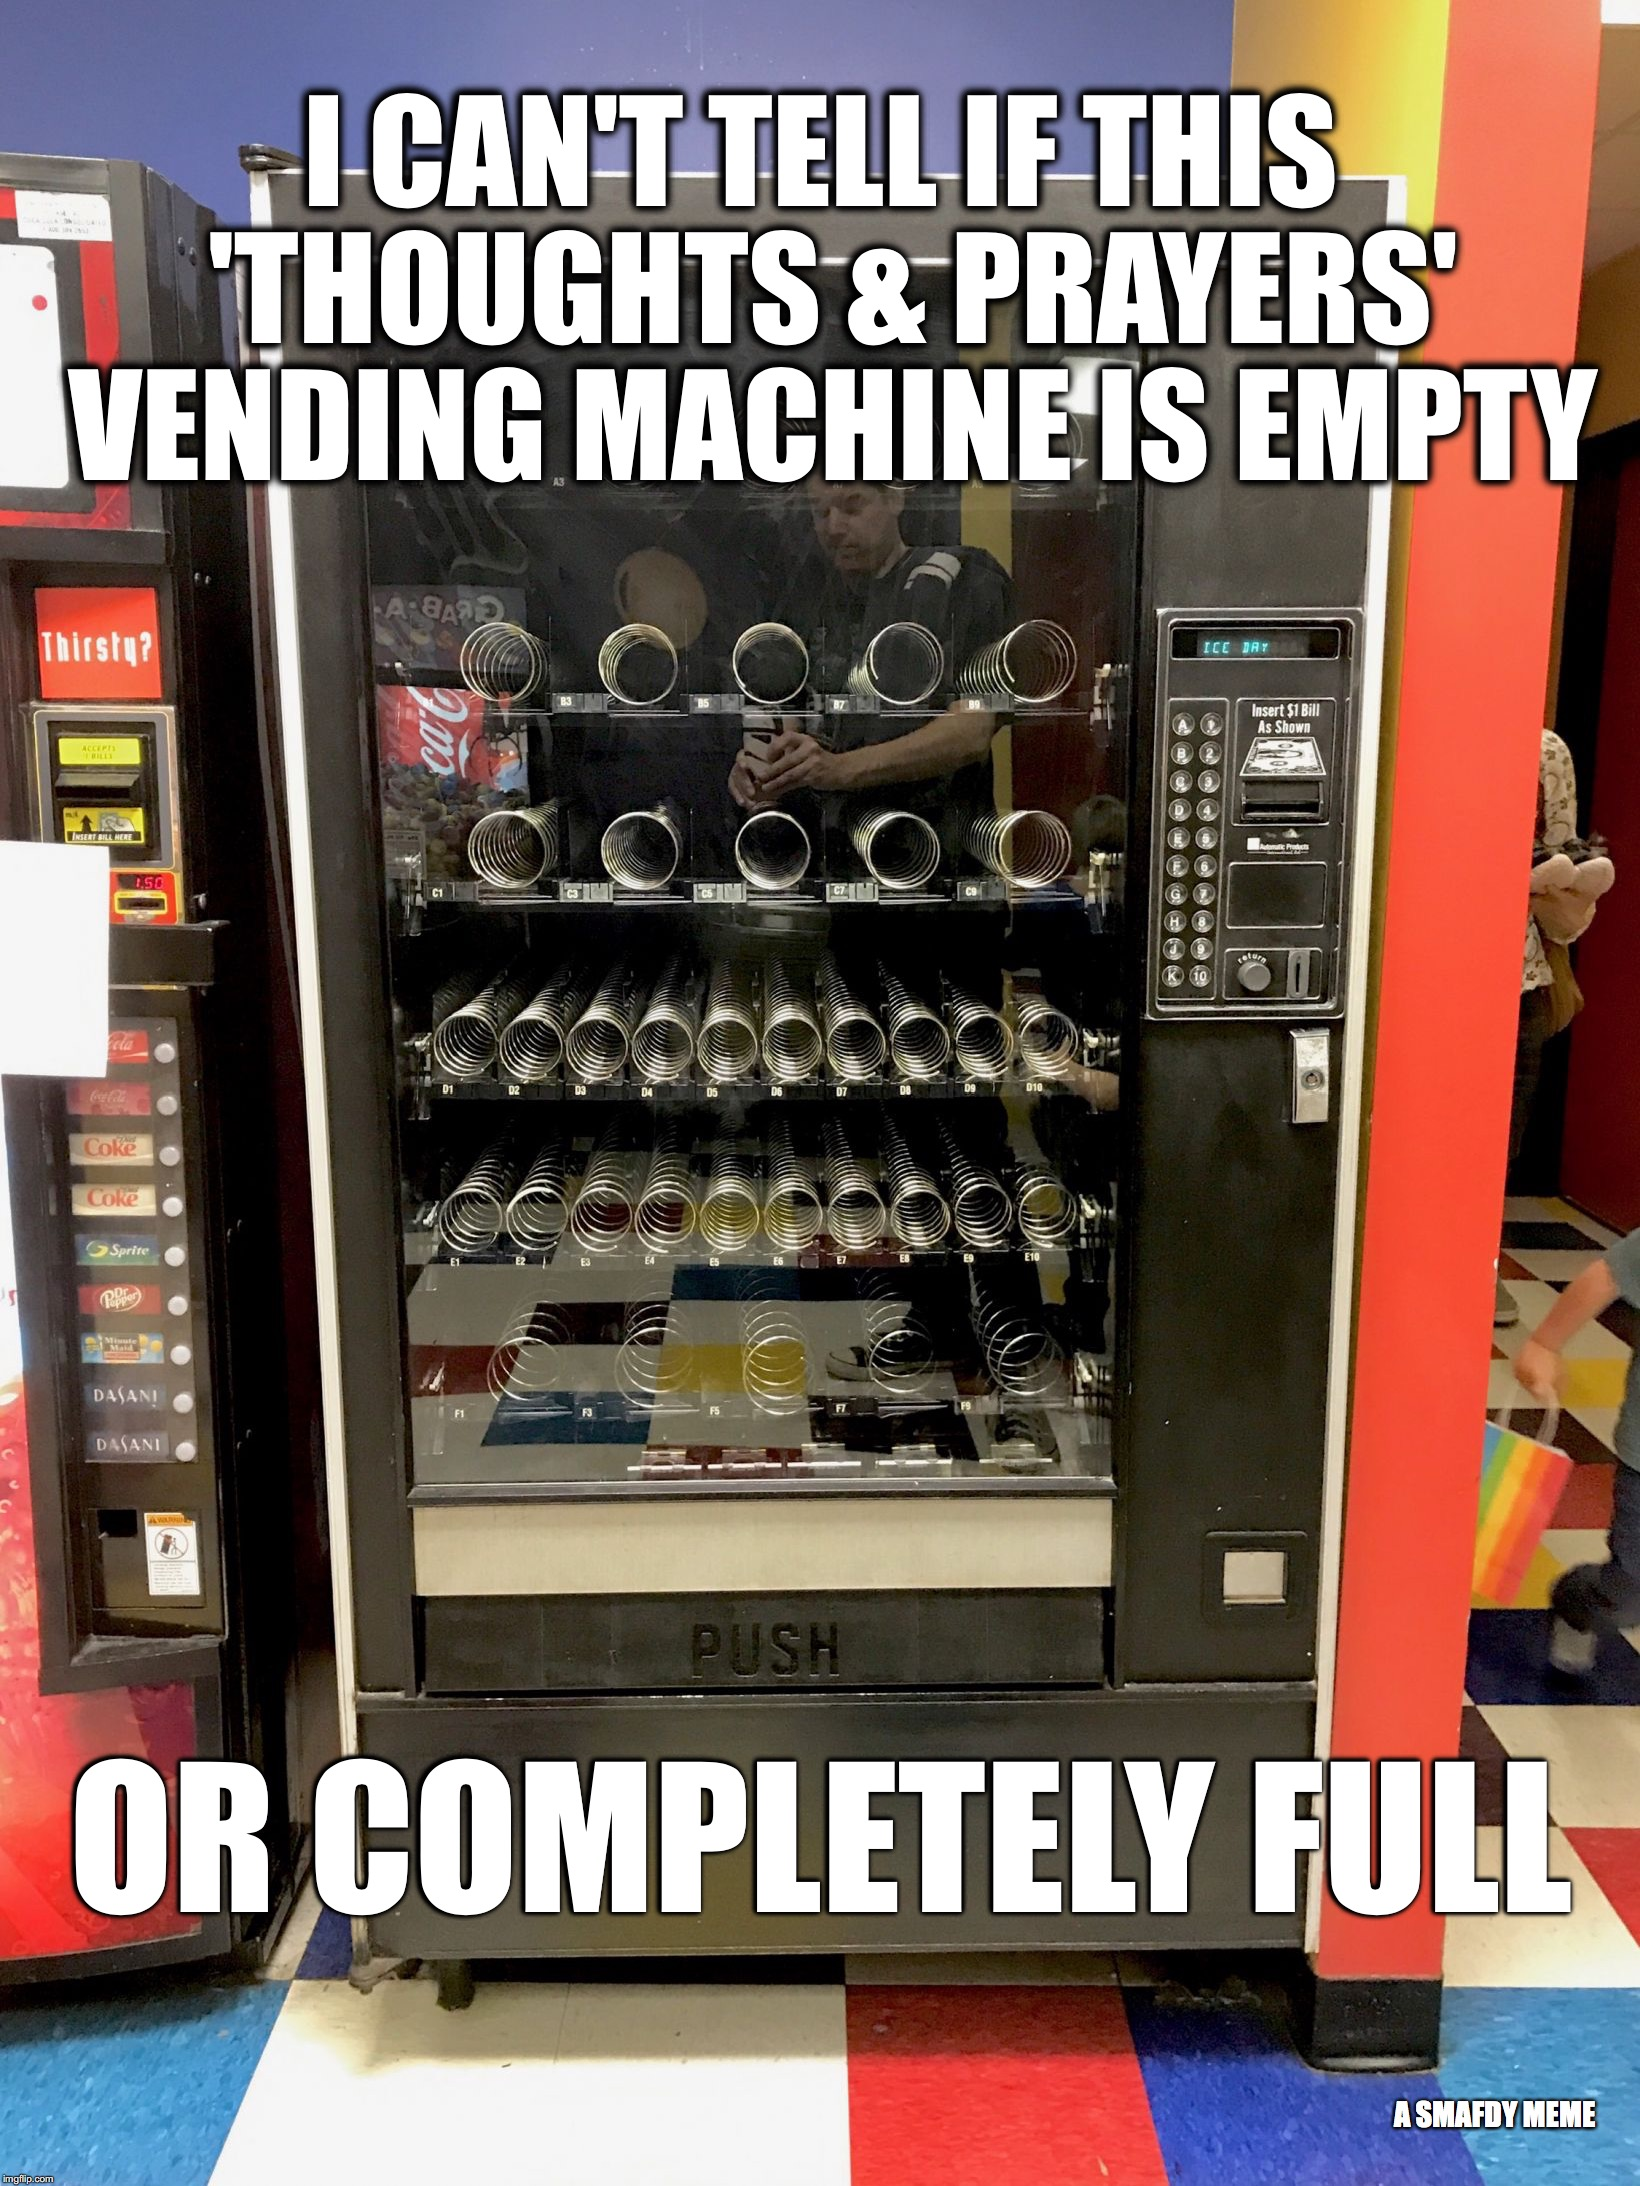 I CAN'T TELL IF THIS 'THOUGHTS & PRAYERS' VENDING MACHINE IS EMPTY OR COMPLETELY FULL A SMAFDY MEME | image tagged in vending machine | made w/ Imgflip meme maker